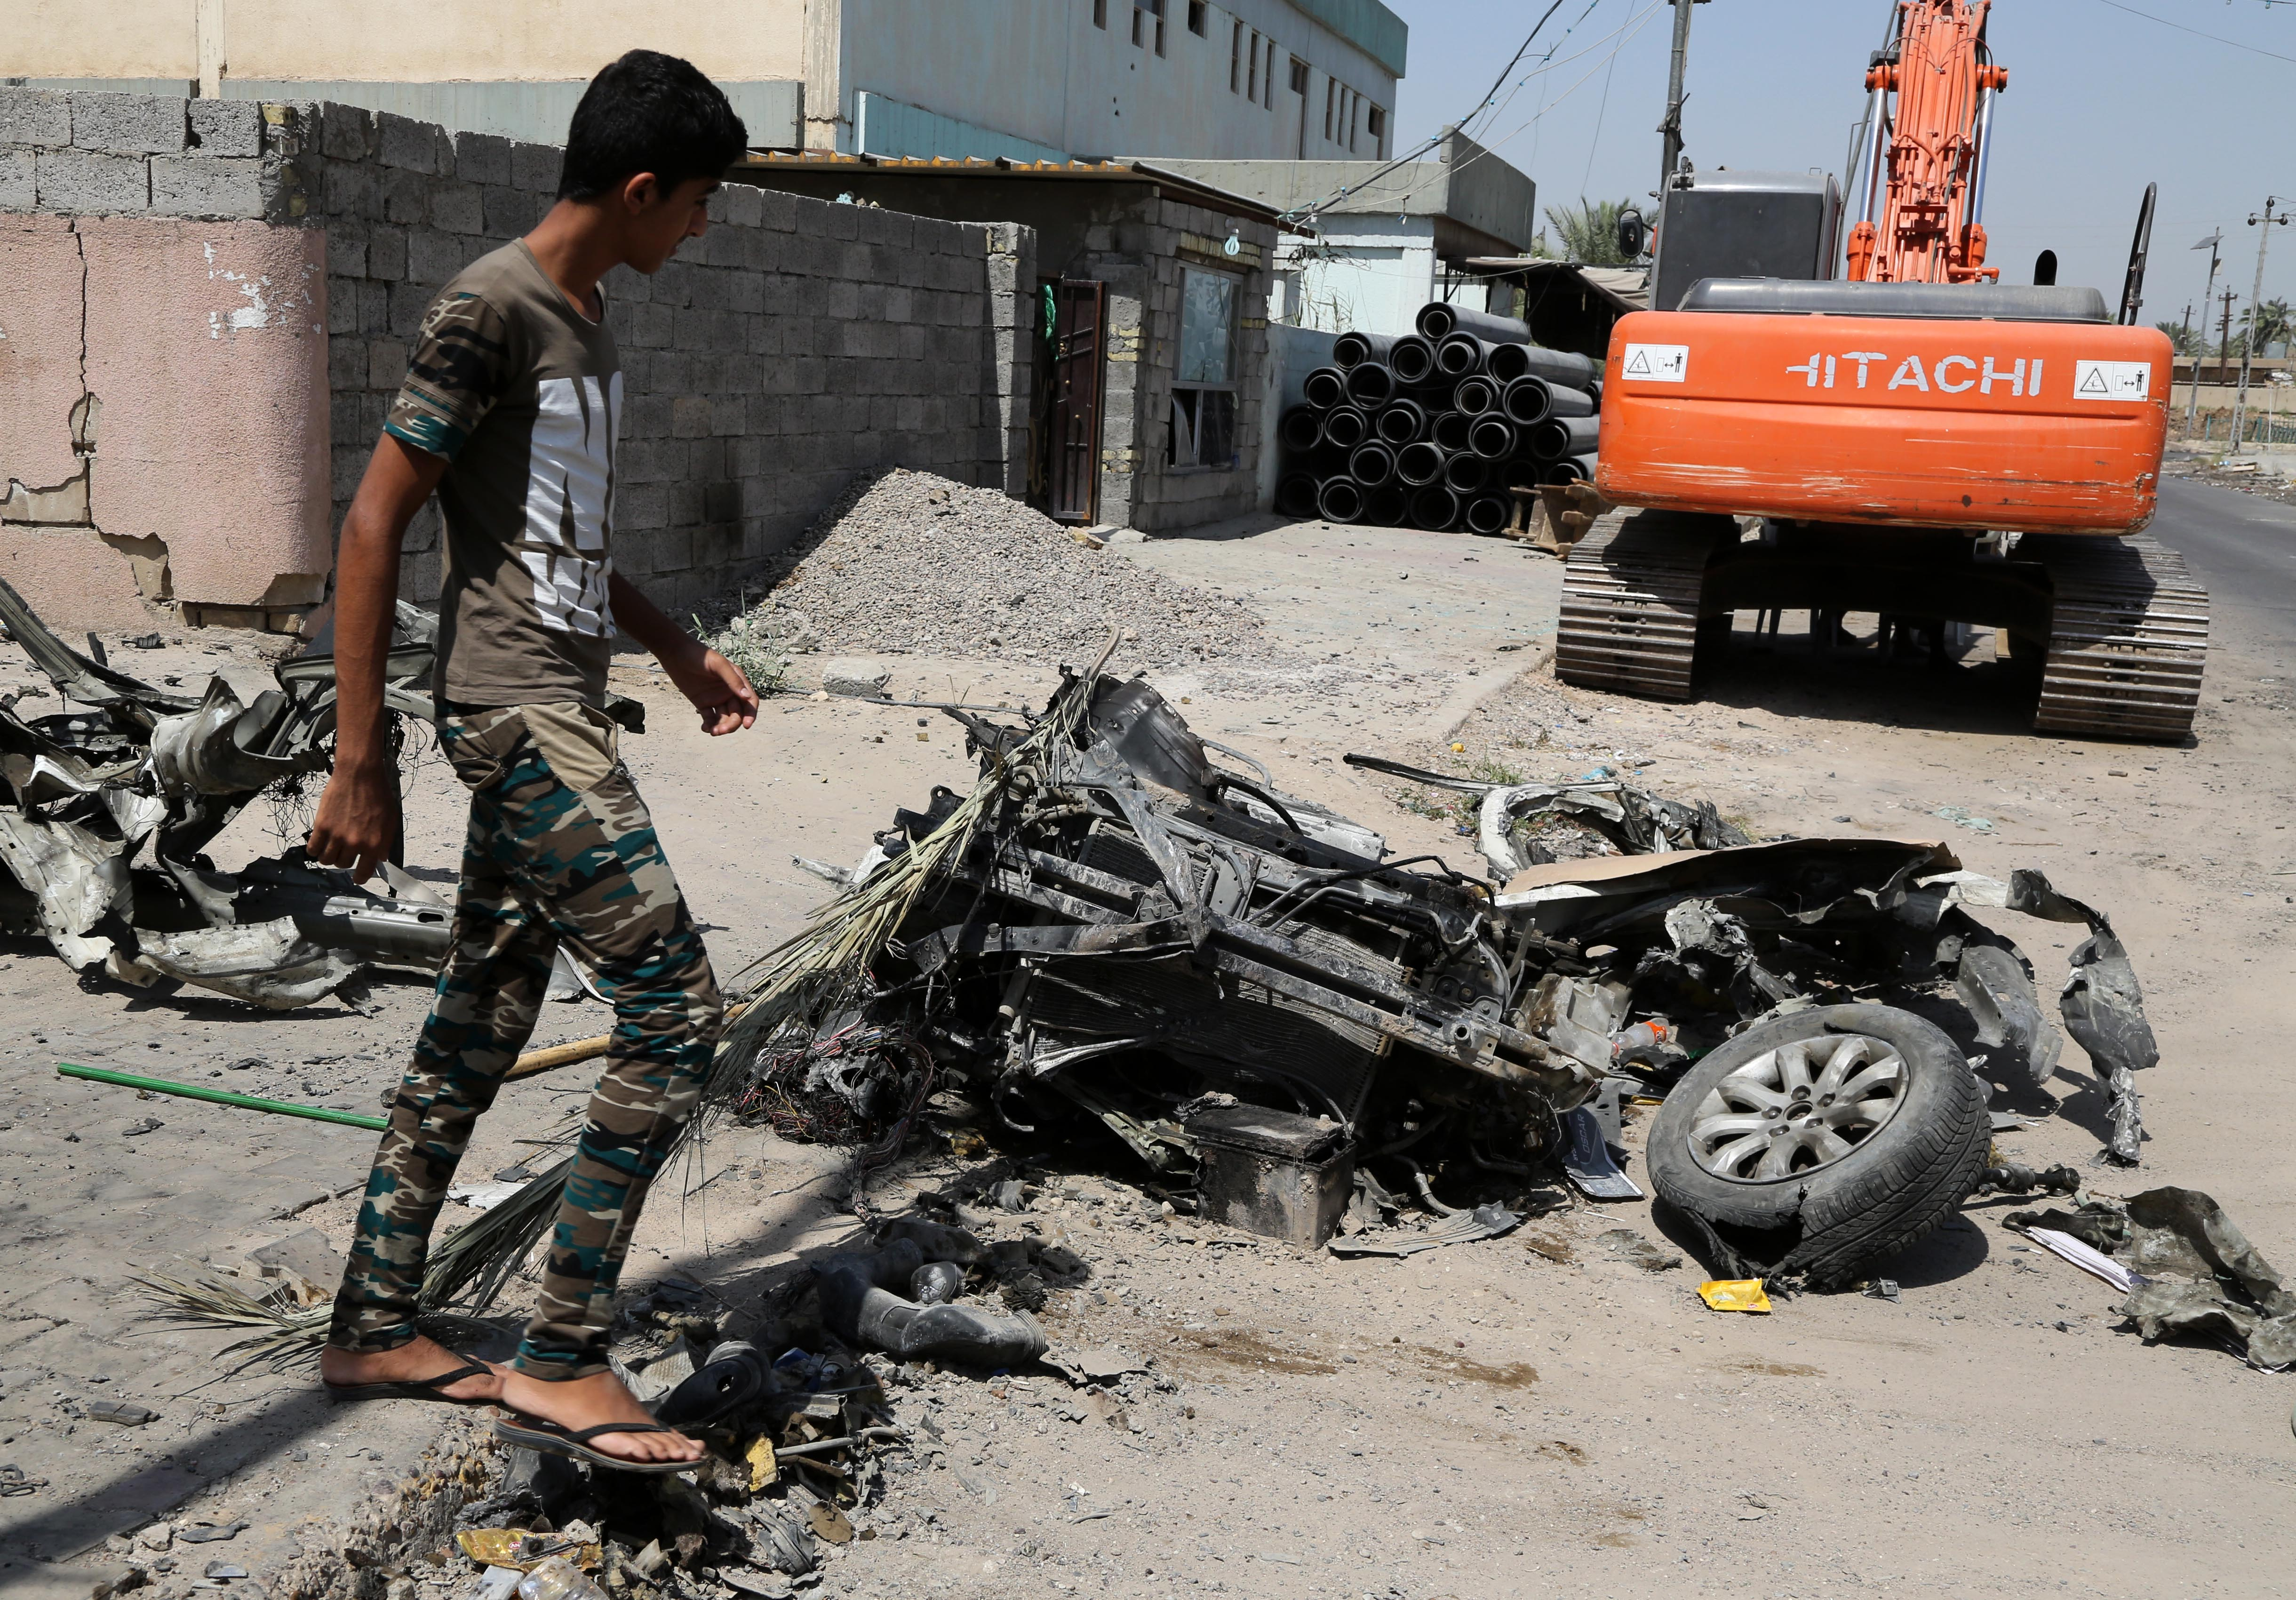 A man inspects the scene of an explosion in a busy commercial area in Baghdad, Iraq Monday, July 13, 2015. A string of car bombs and explosive belts attacks across Baghdad killed and wounded dozens of people on Sunday, Iraqi officials said. (AP Photo/Karim Kadim)